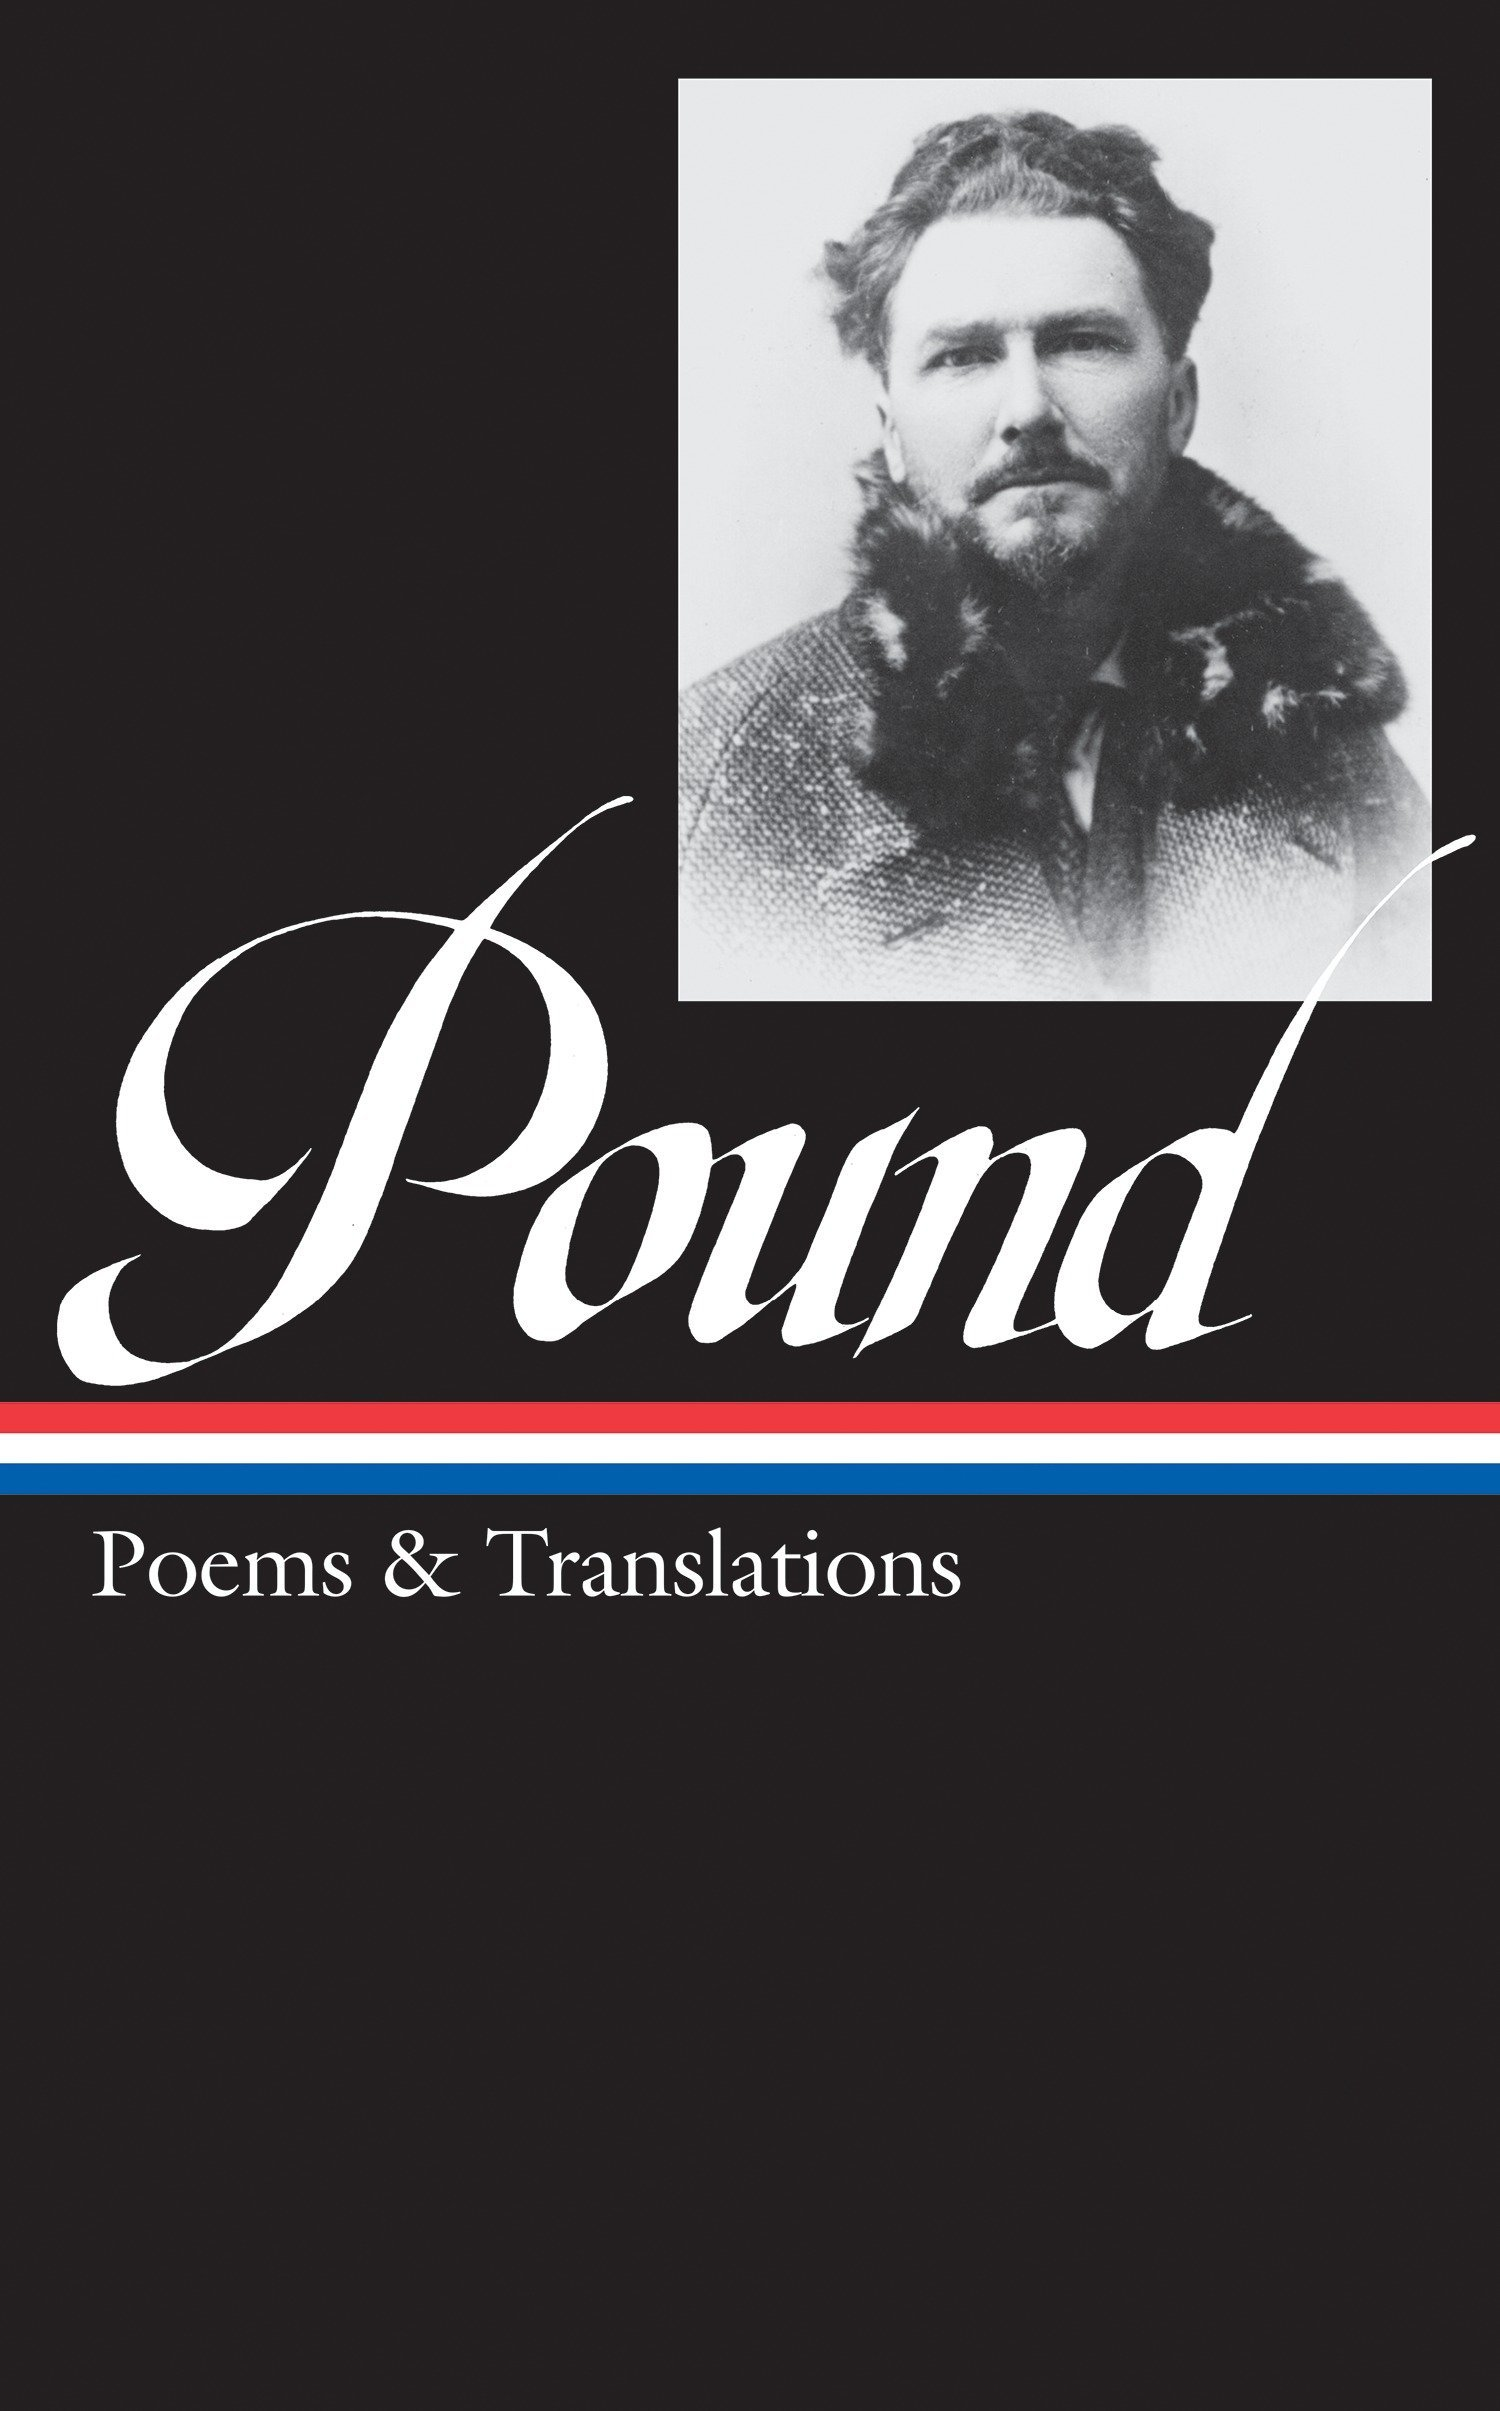 Read Online Ezra Pound: Poems & Translations (LOA #144) (Library of America) PDF